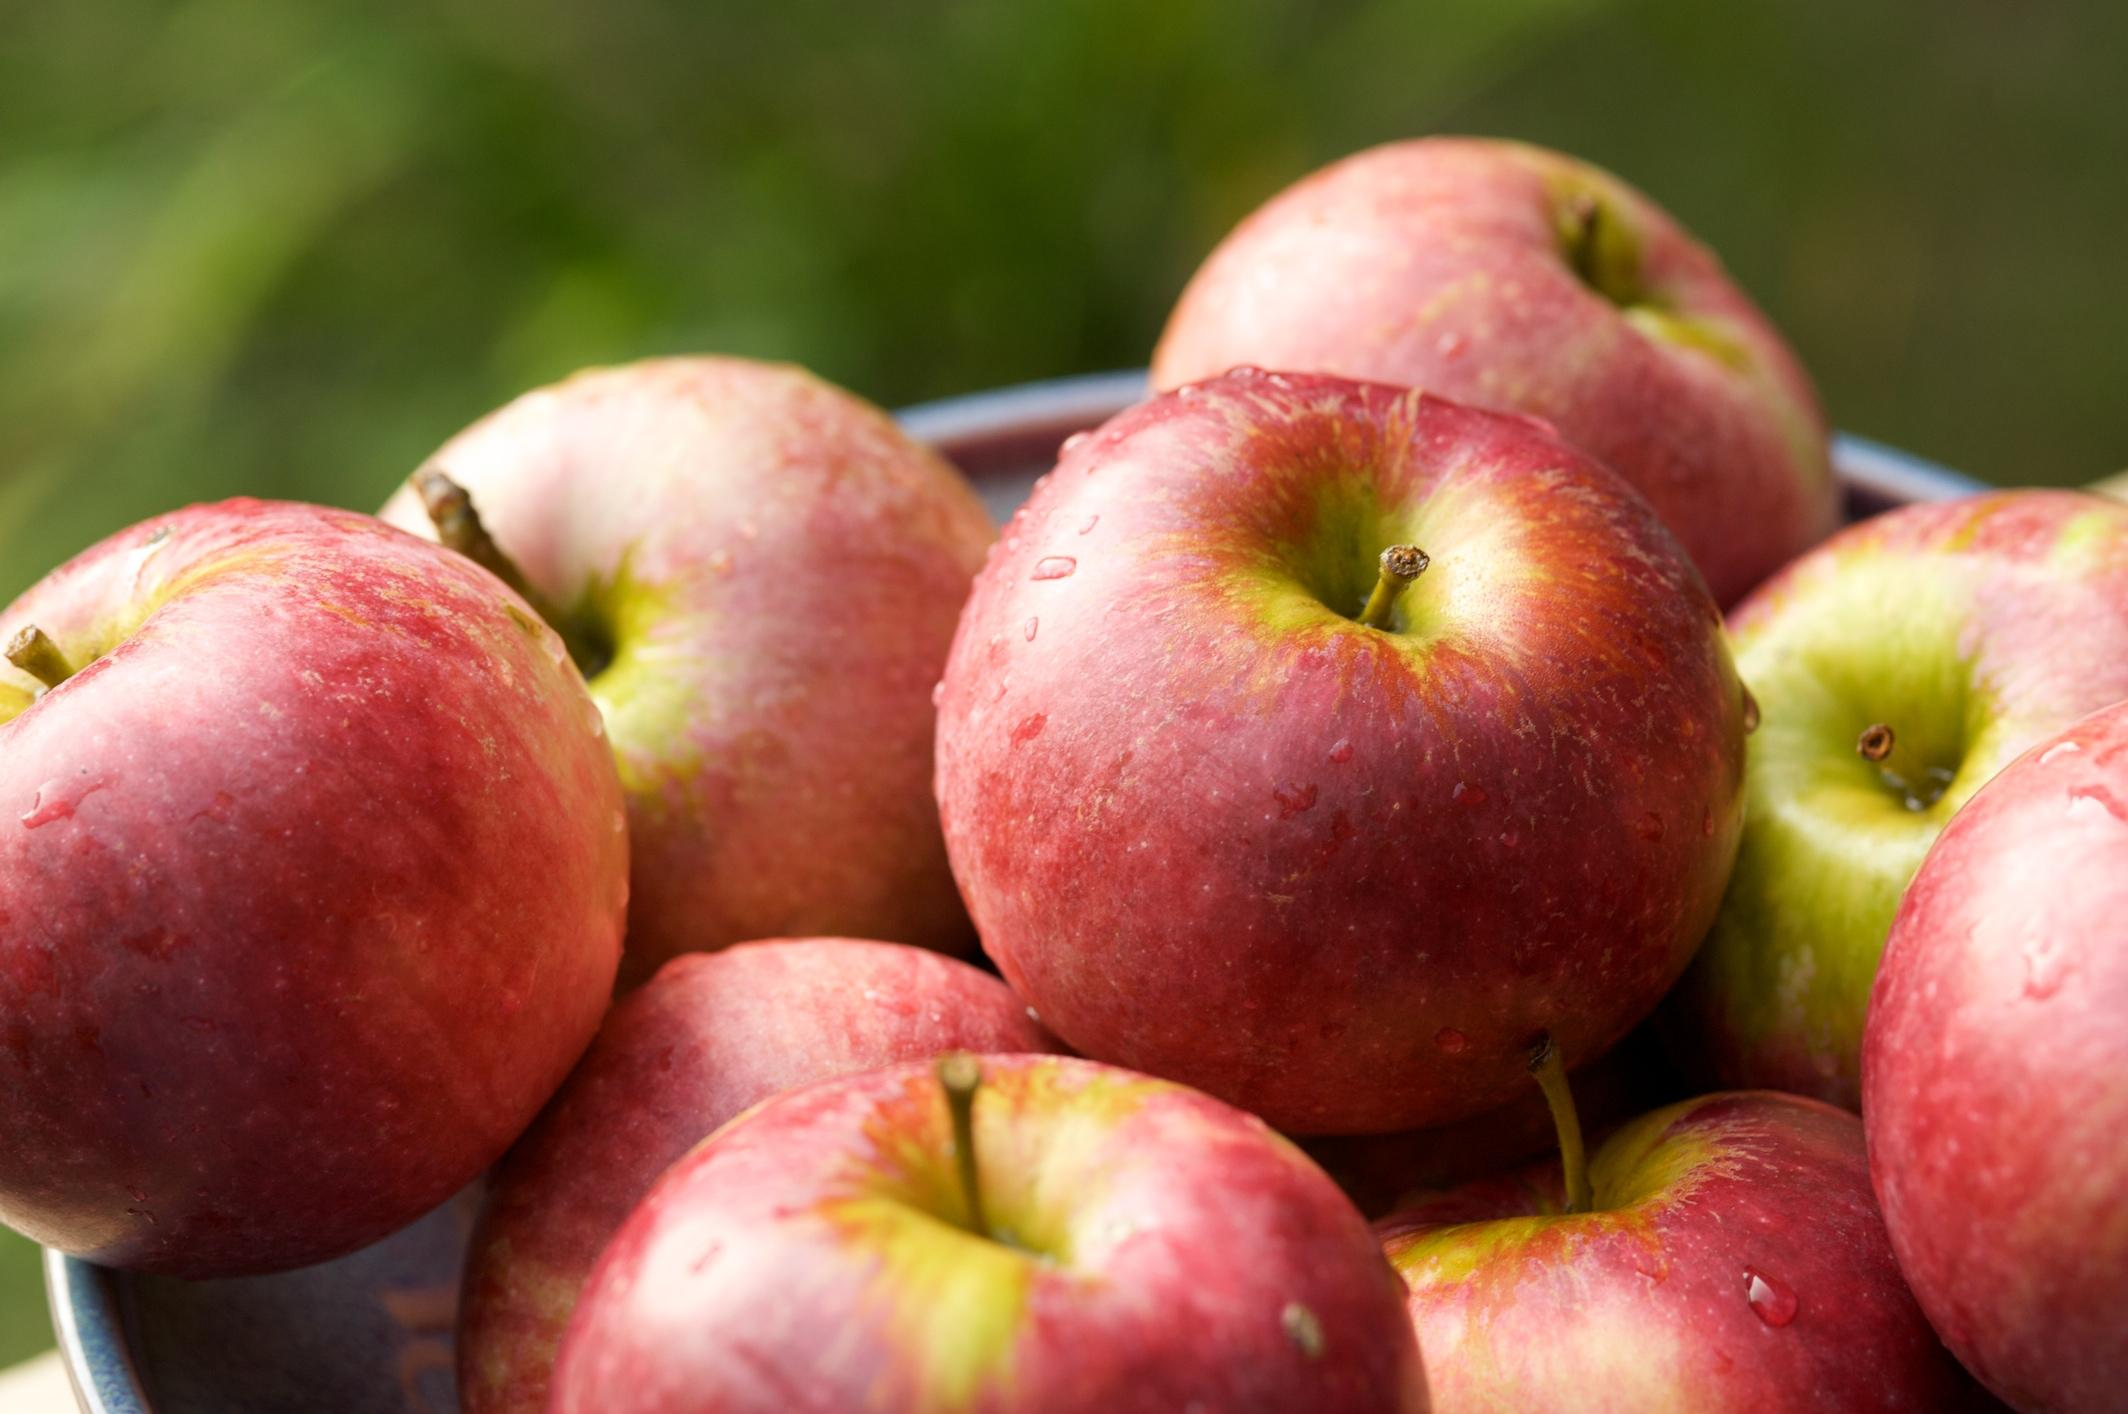 Watch The Top 4 Reasons to Eat Apples video